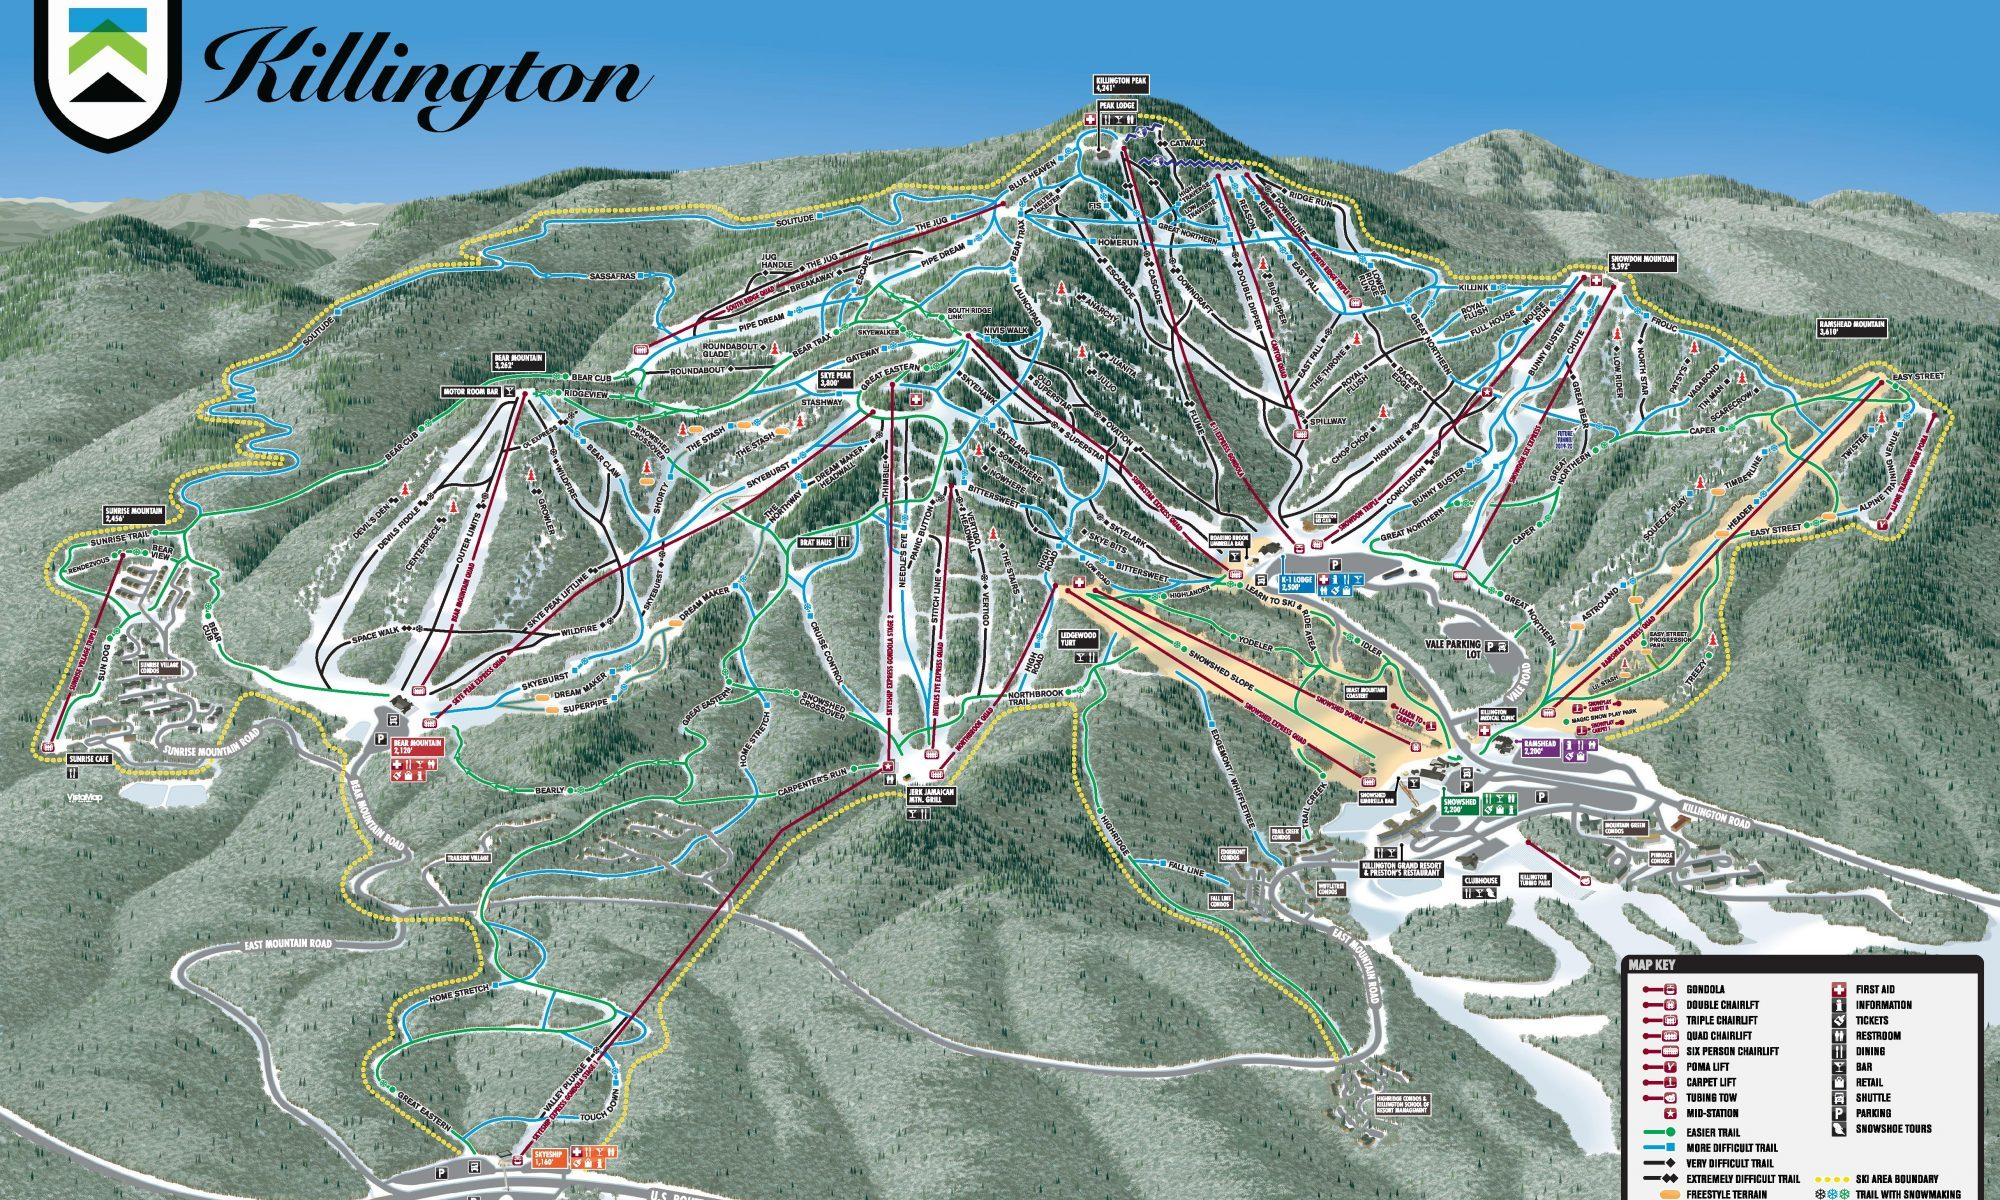 Killington ski map. Killington will replace the North Ridge Triple Lift with a Quad Chairlift.